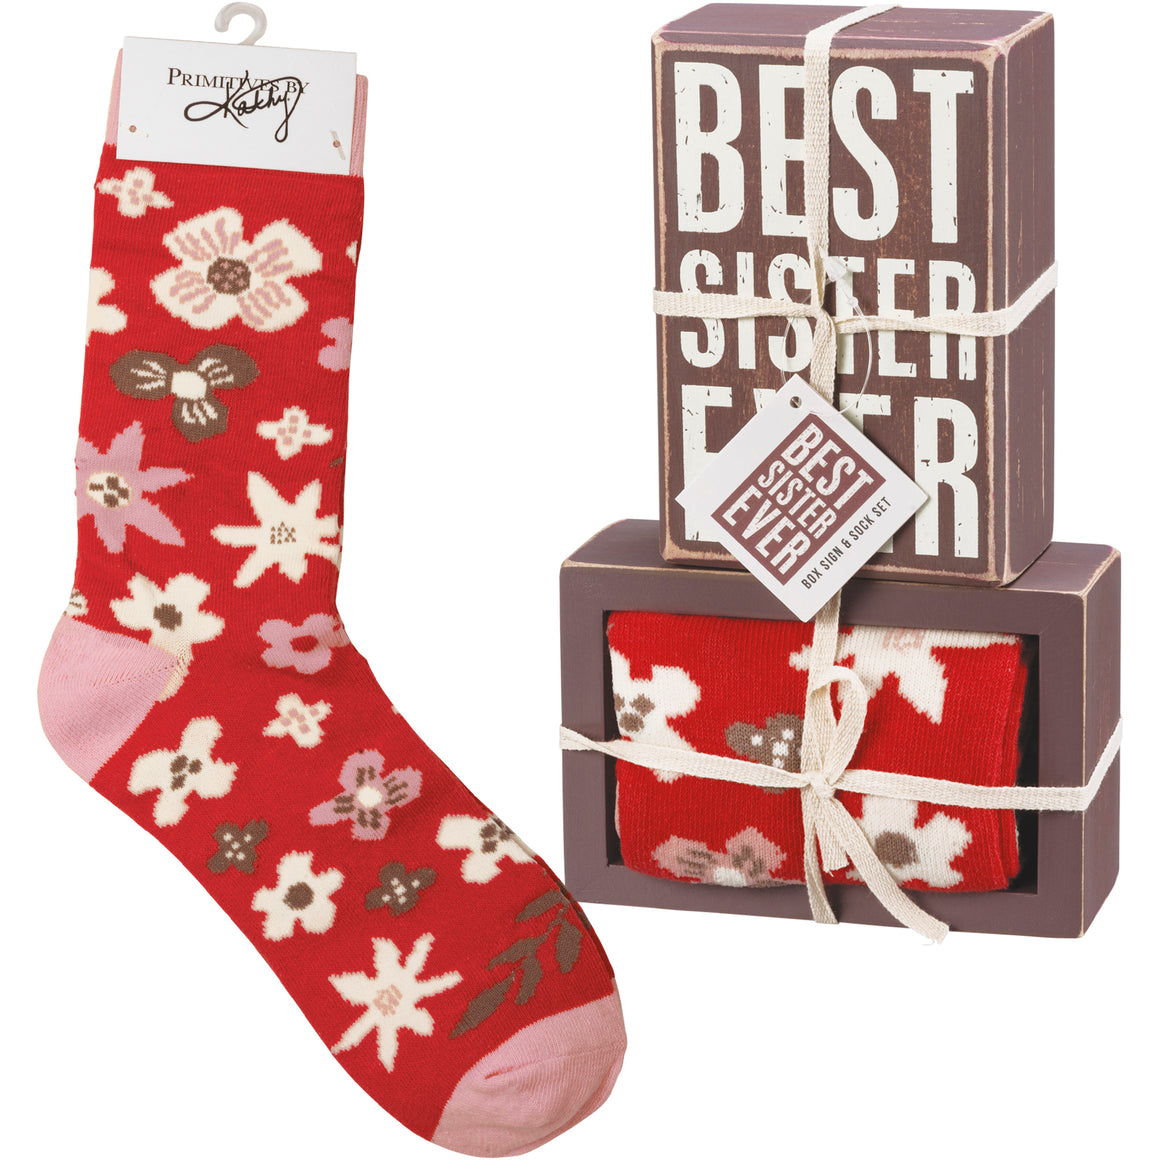 Best Sister Ever Socks & Box Sign Gift Set